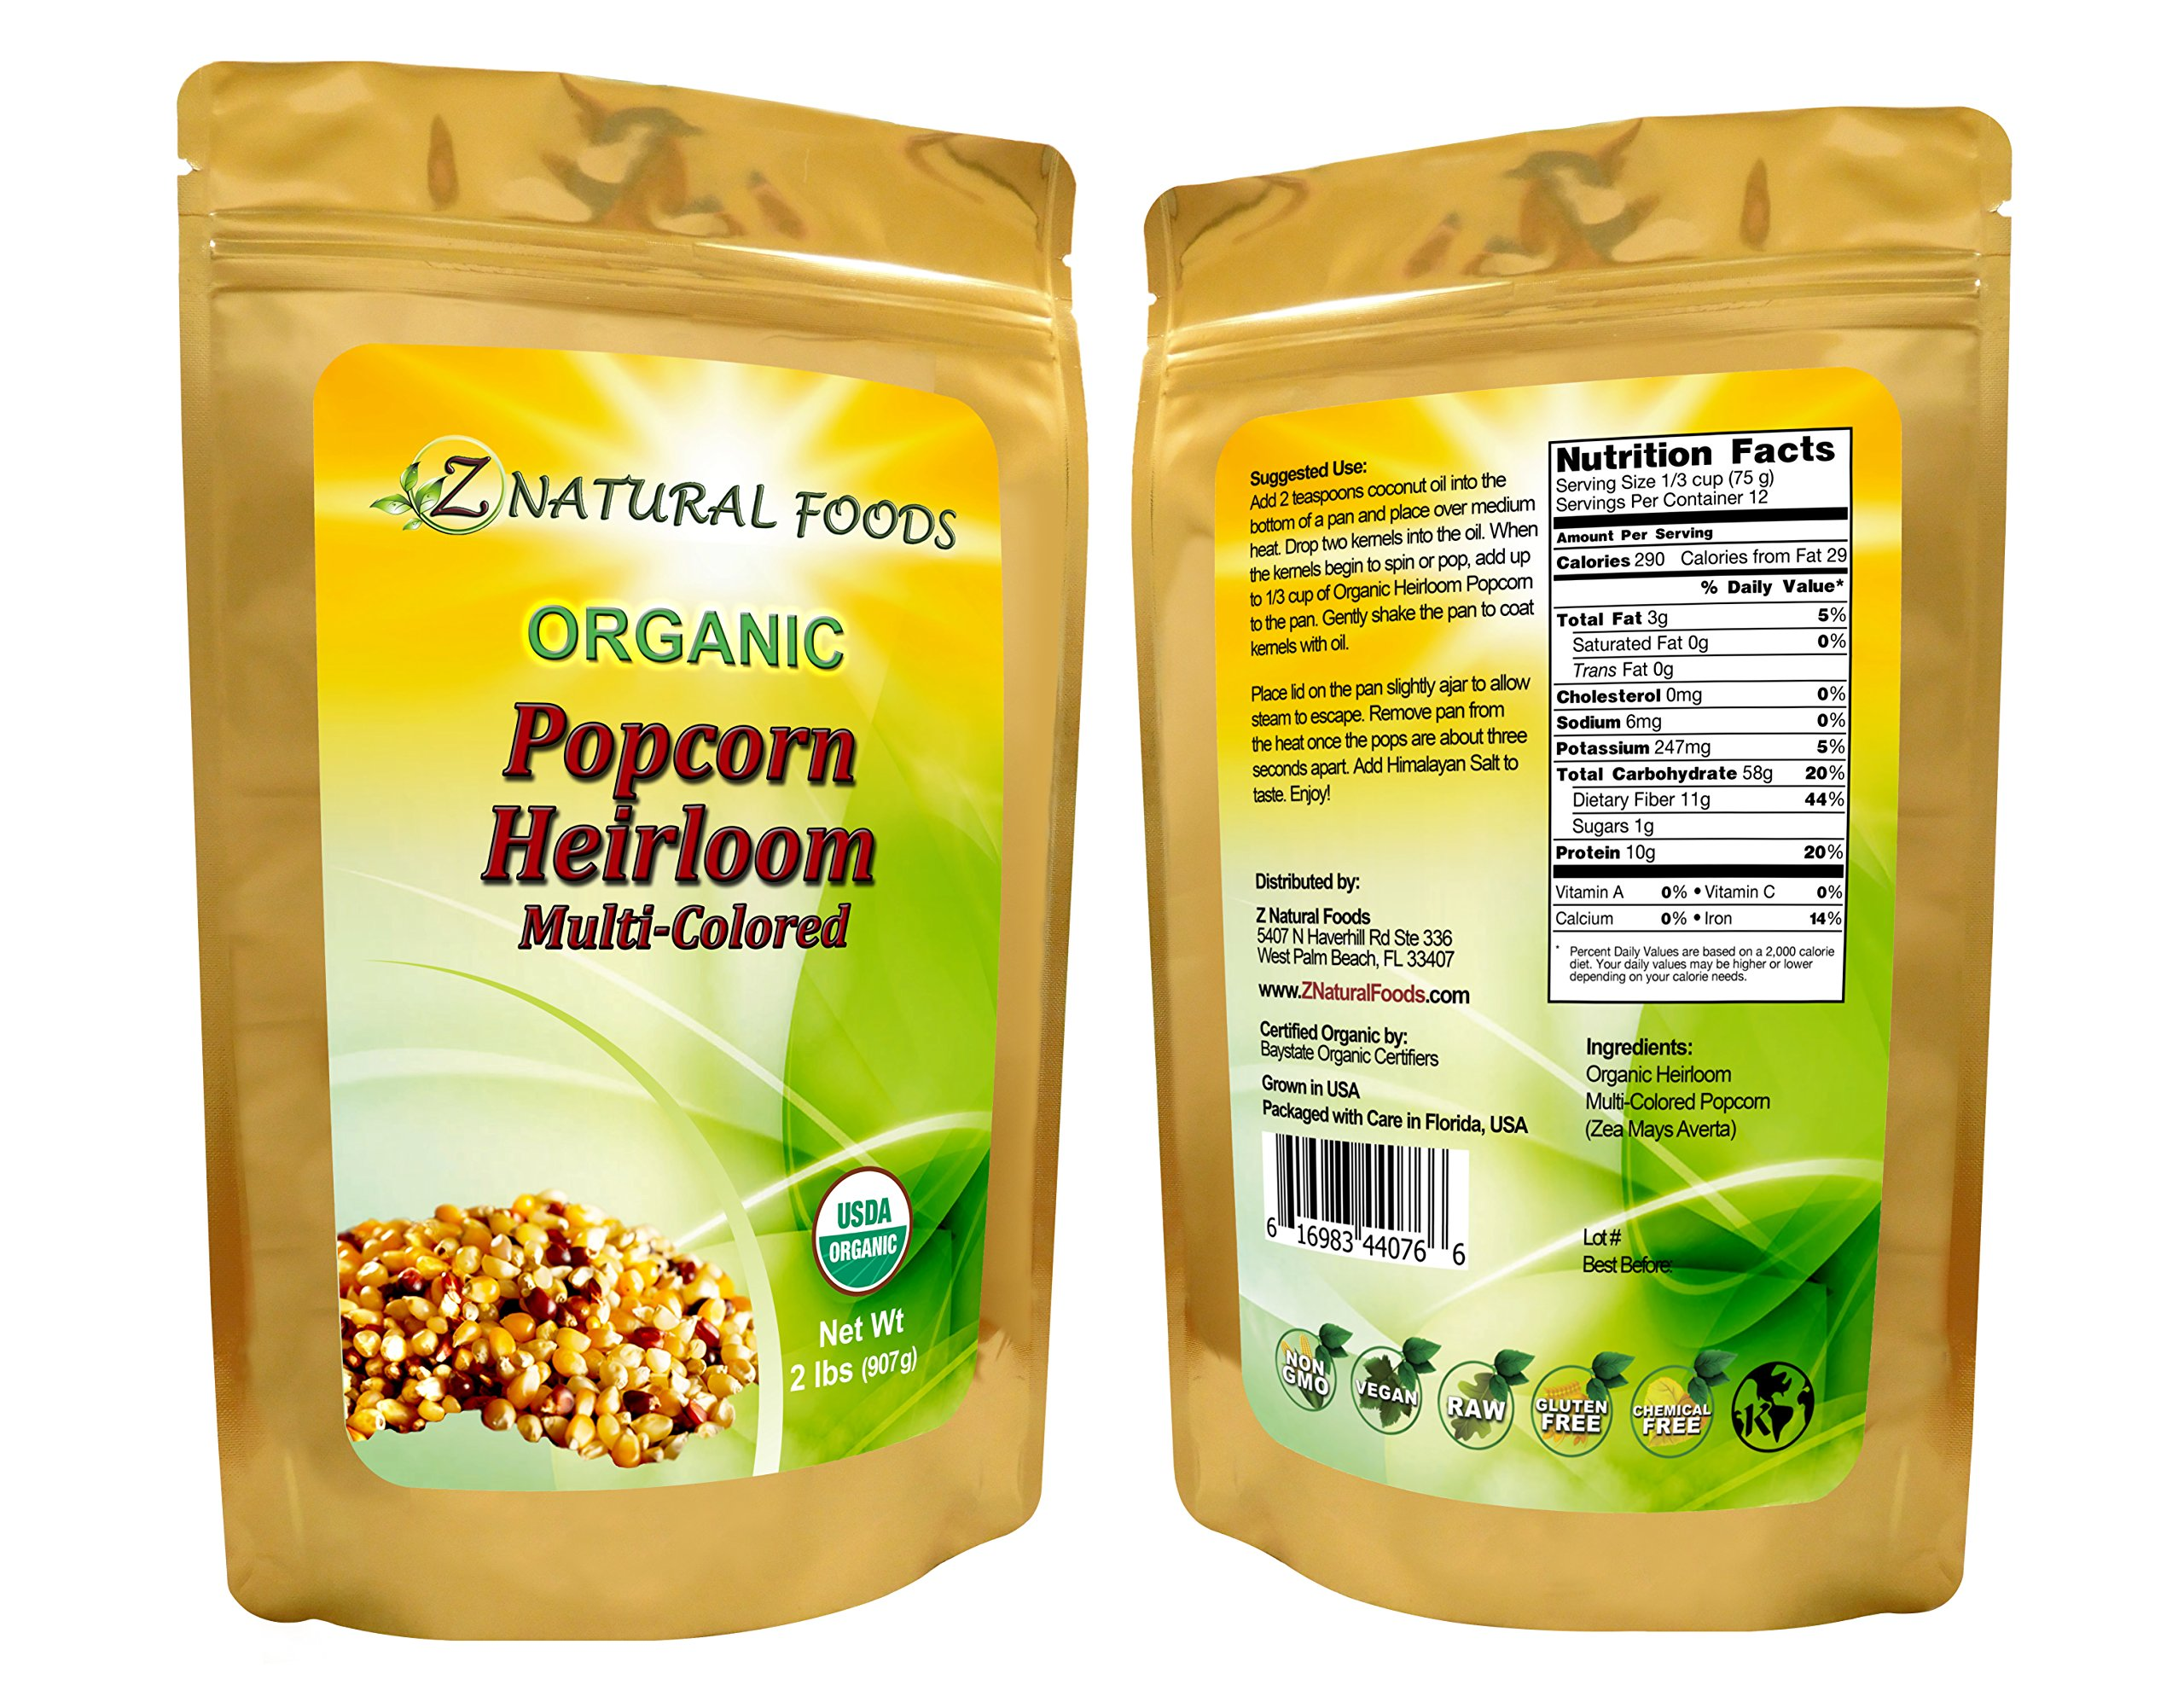 All-Natural, Raw Heirloom Popcorn Kernels, Unpopped, Multi-colored - High Fiber, Non-GMO, USDA Certified Organic, 32 oz (2 lbs)